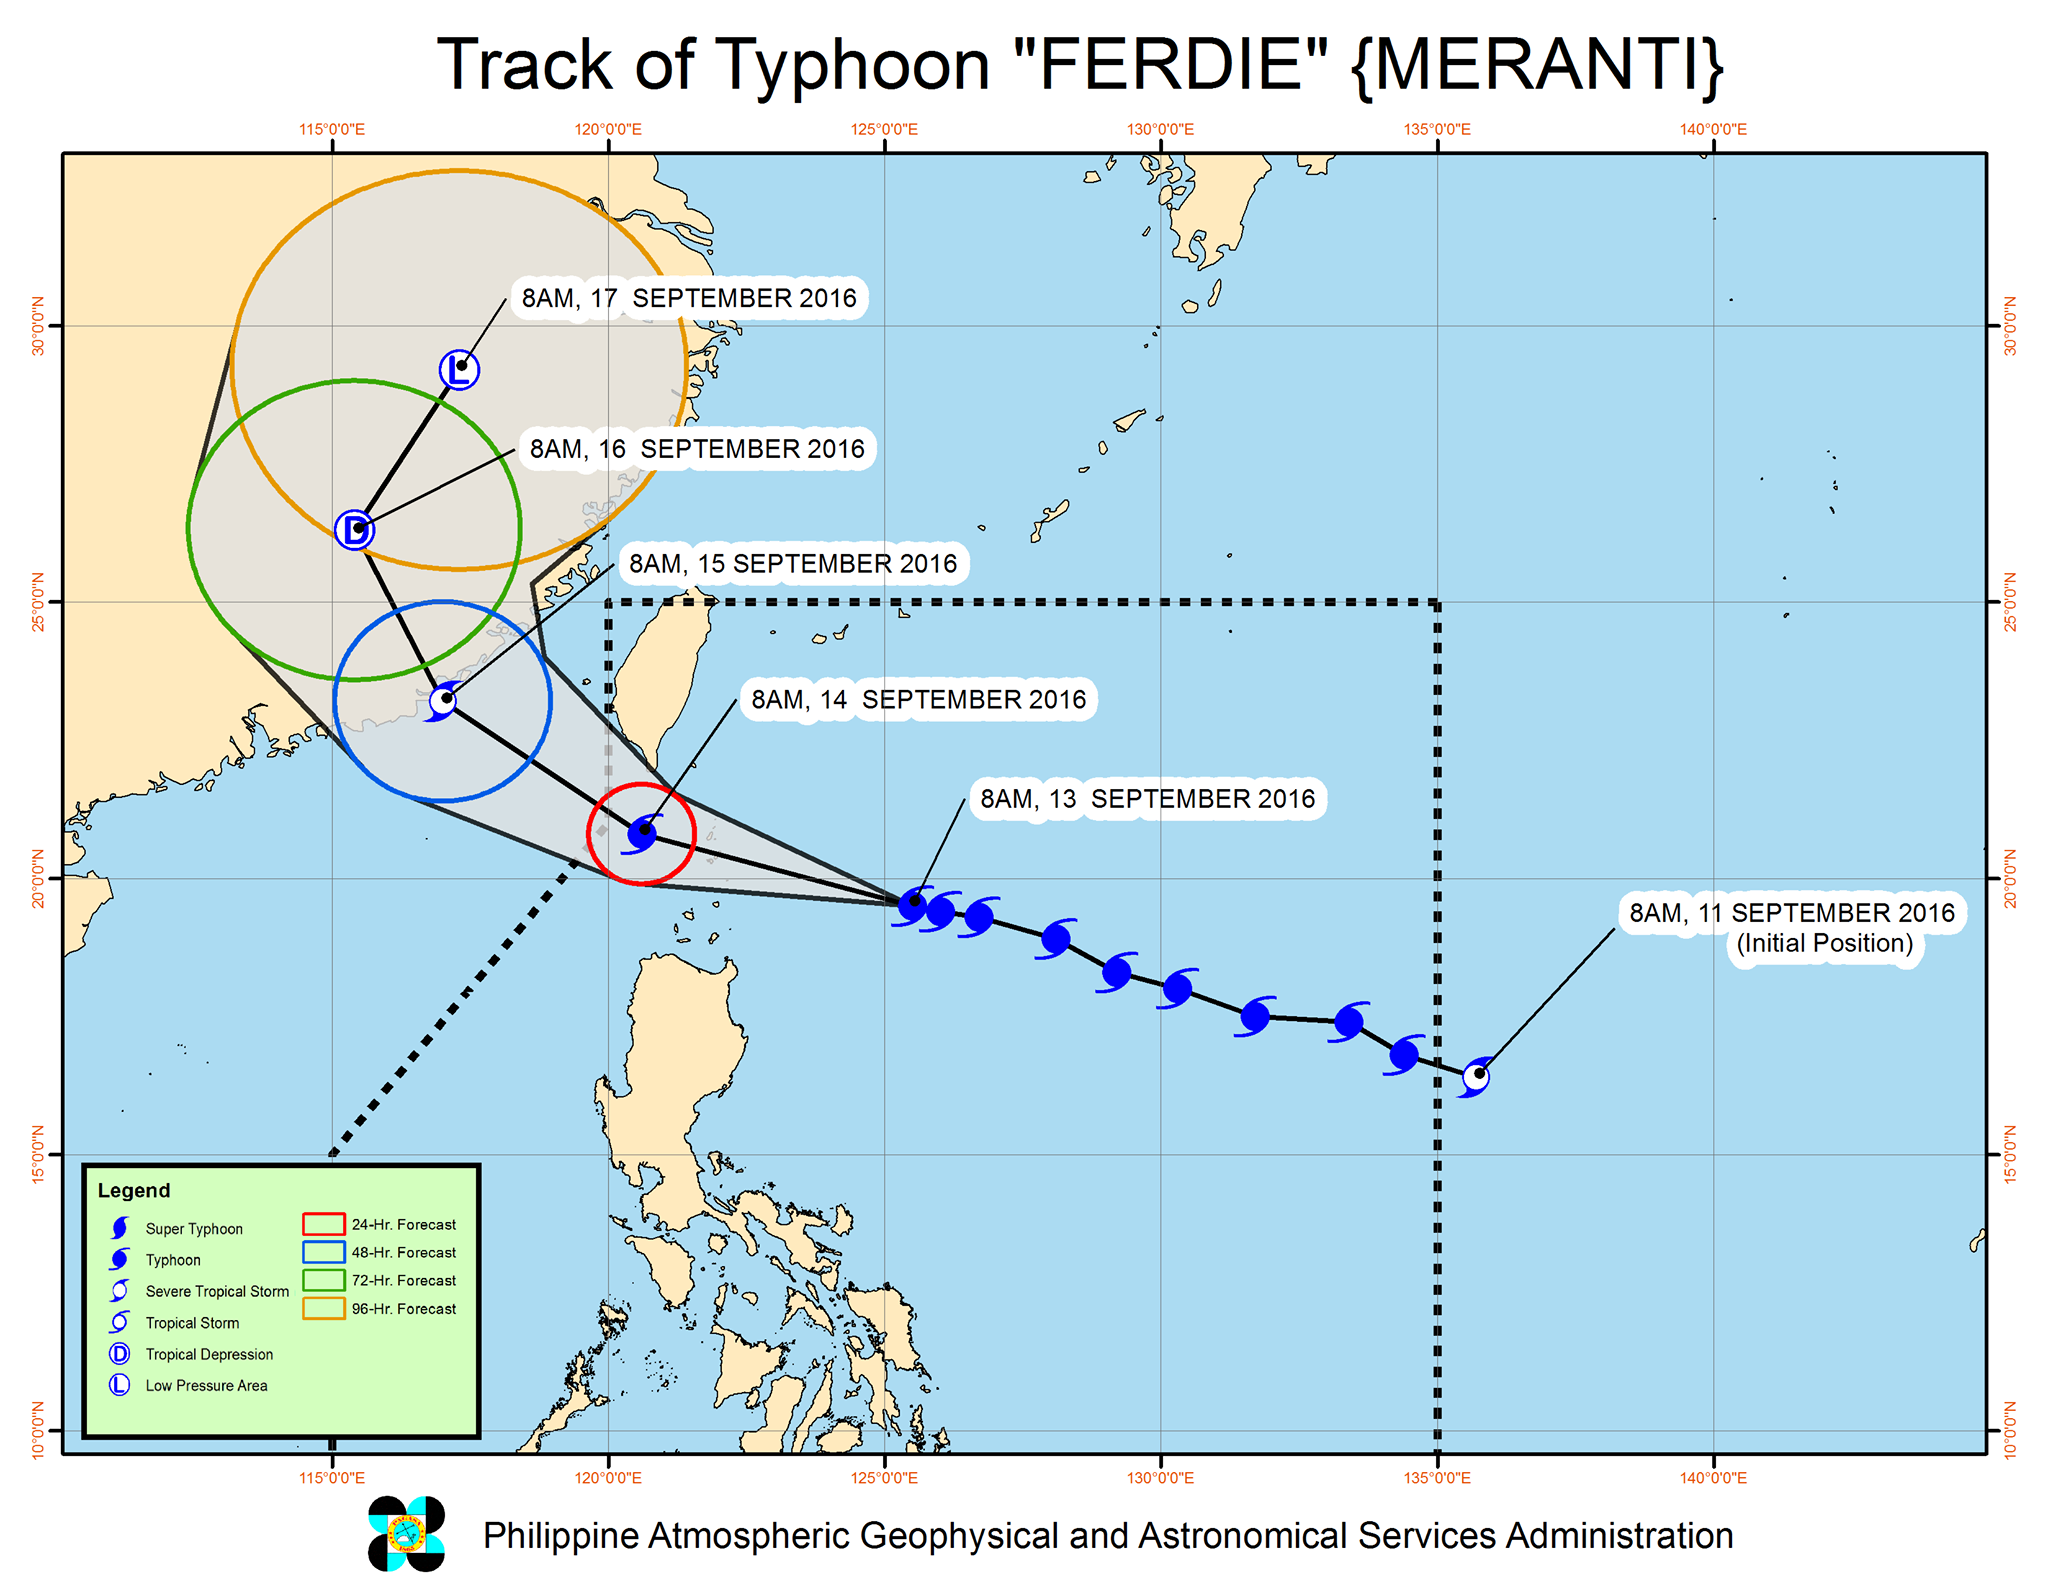 Forecast track of Typhoon Ferdie as of September 13, 11 am. Image courtesy of PAGASA